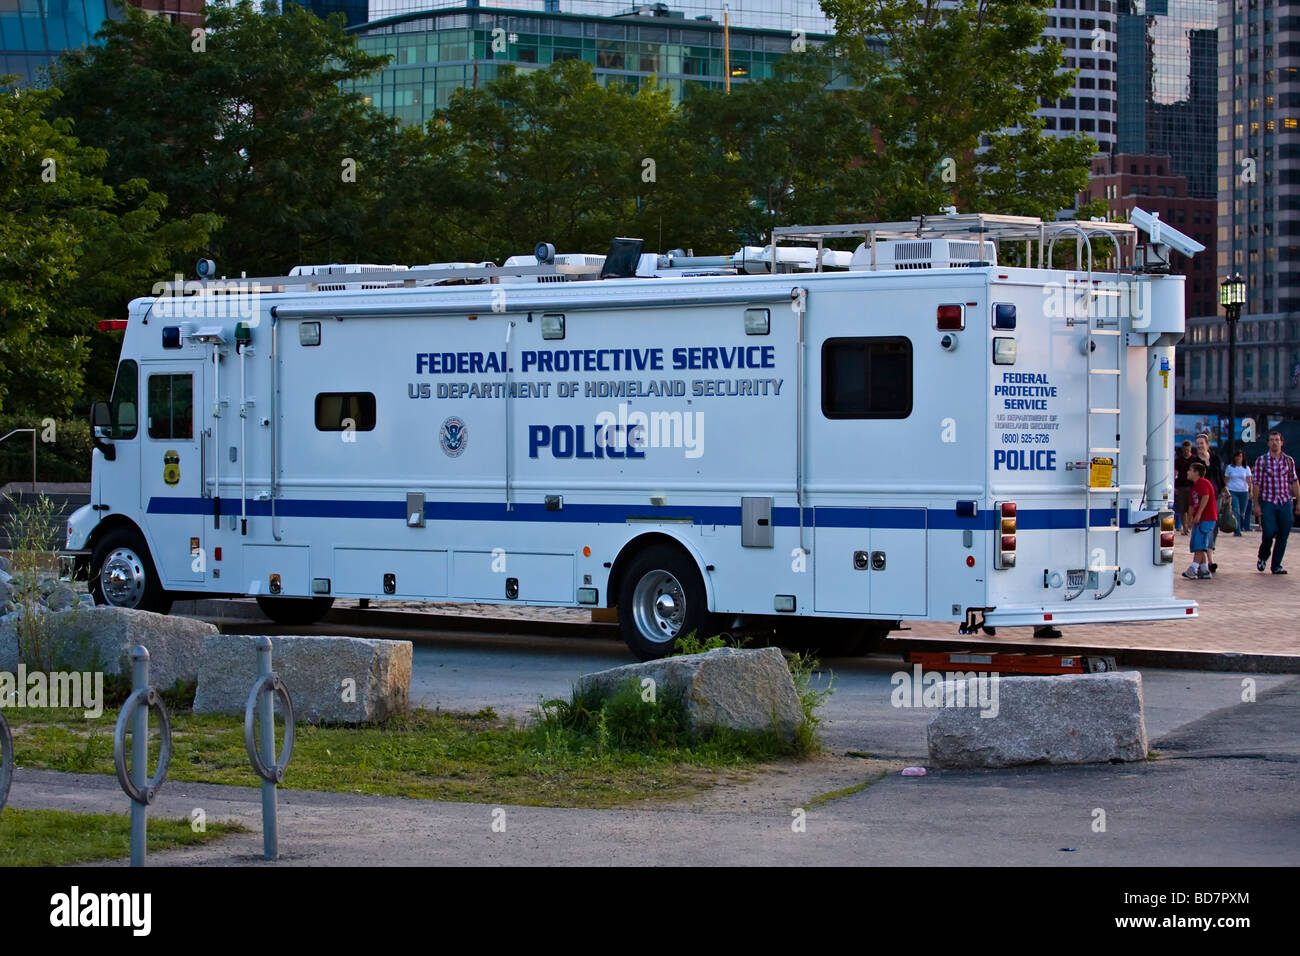 United States Department of Homeland Security.  Federal Protective Service Police Mobile Command Unit. - Stock Image